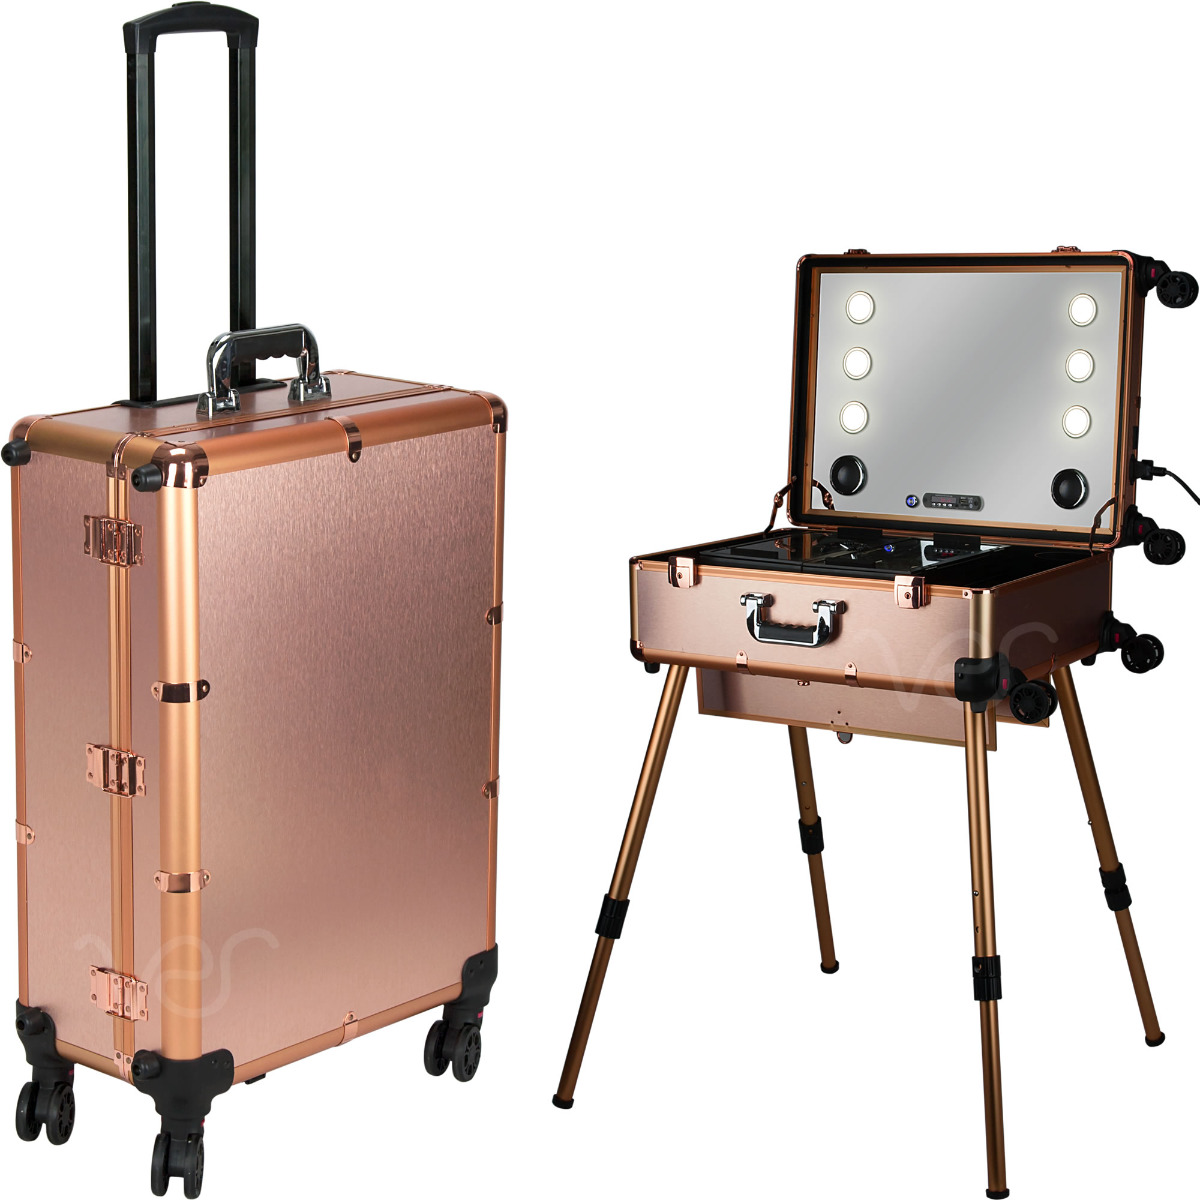 VER BEAUTY ROSE GOLD PROFESSIONAL ROLLING STUDIO MAKEUP CASE WITH TOUCHSCREEN POWER 3 TEMP LED LIGHTS, MULTIMEDIA, SPEAKERS, LEGS & MIRROR VLR003